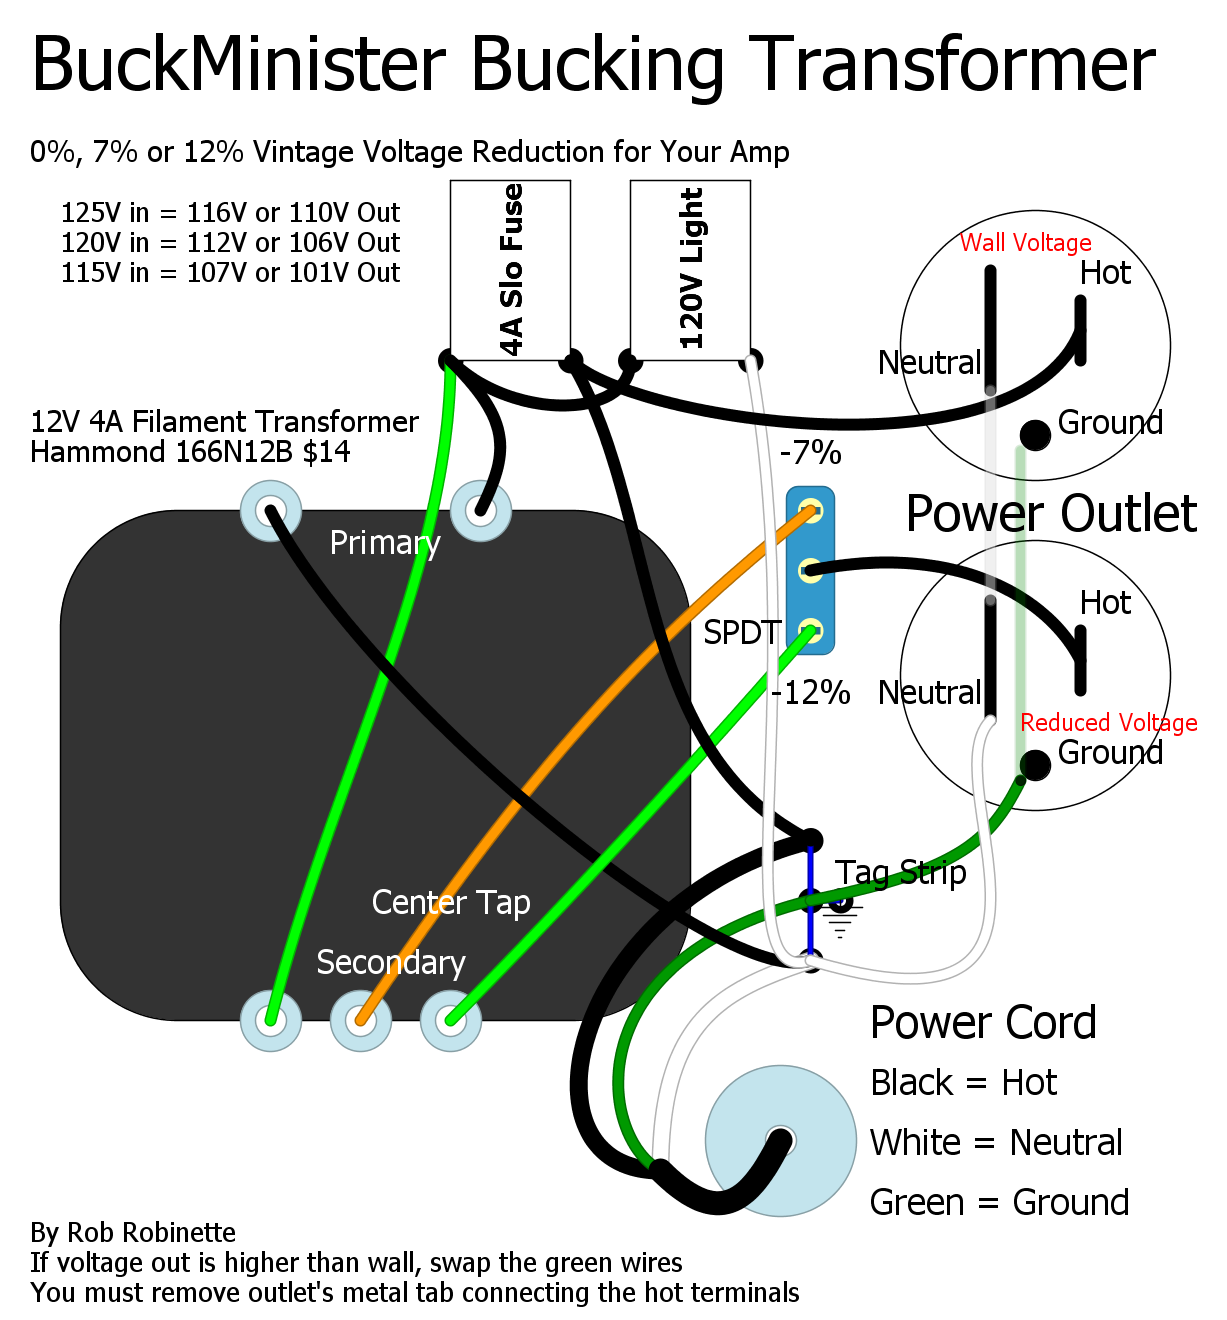 fender forums u2022 view topic bucking transformer rh forums fender com Buck-Boost Transformers Theory Three-Phase Buck-Boost Transformer